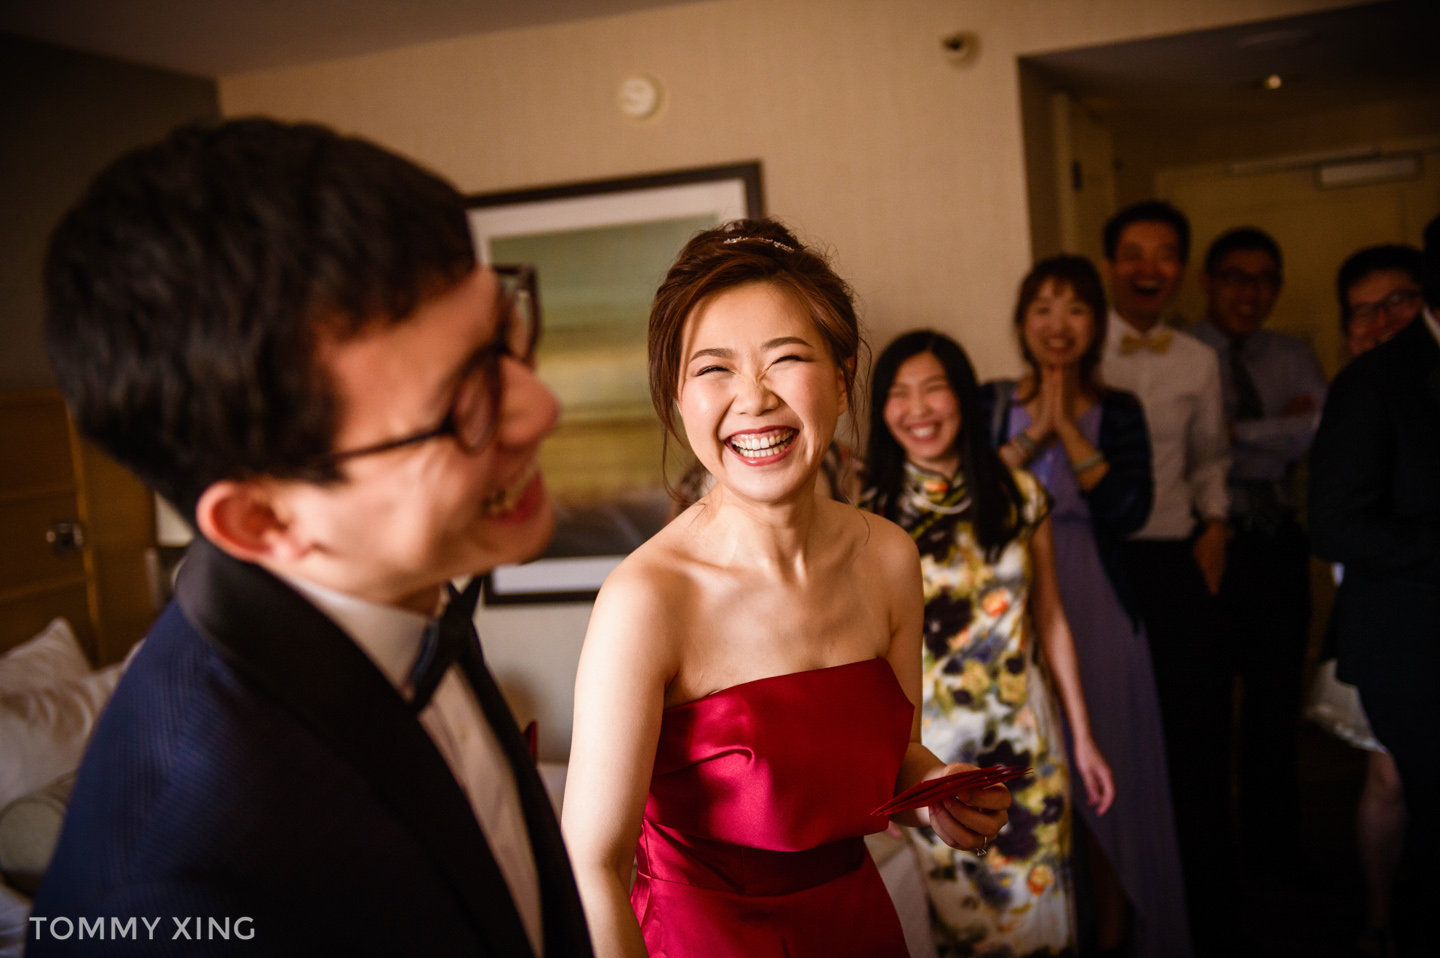 Los Angeles Wedding Photographer 洛杉矶婚礼婚纱摄影师 Tommy Xing-69.JPG